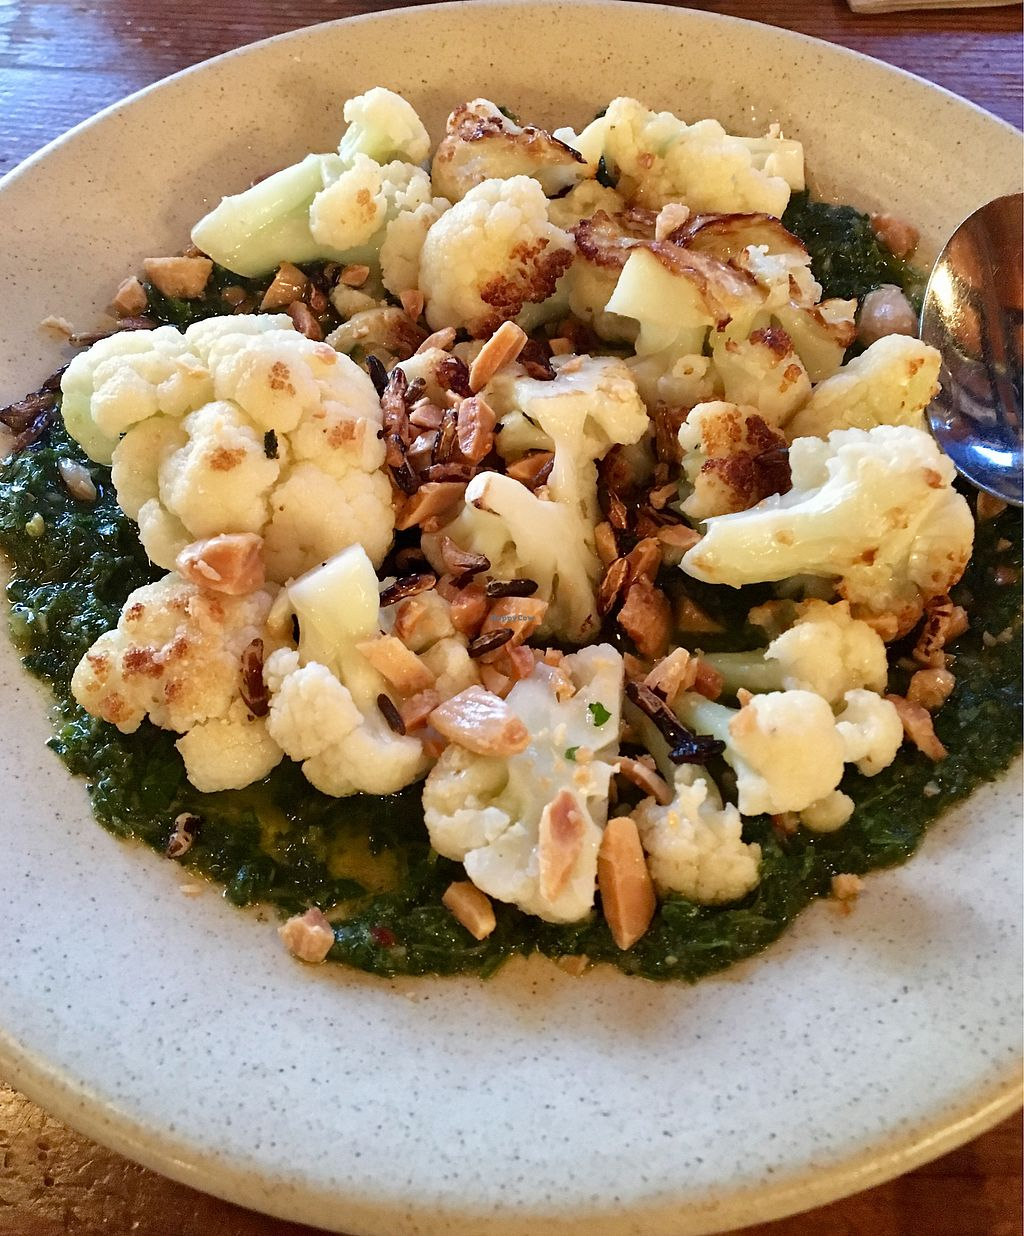 """Photo of Solstice Pizza  by <a href=""""/members/profile/Clean%26Green"""">Clean&Green</a> <br/>Roasted cauliflower - yum!  <br/> April 26, 2018  - <a href='/contact/abuse/image/68257/391092'>Report</a>"""